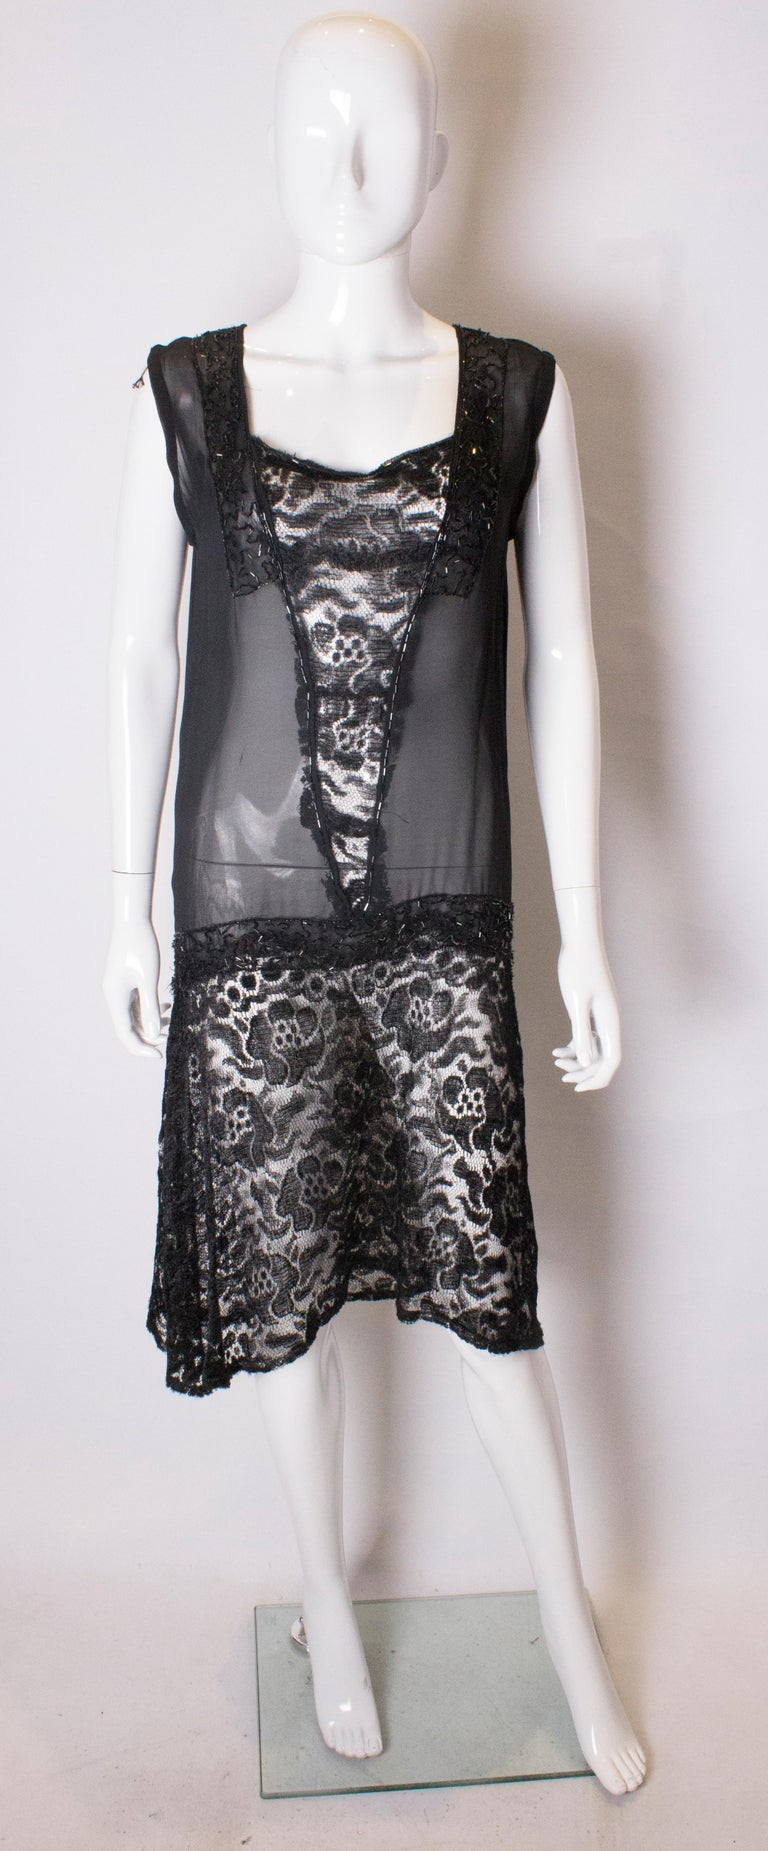 A pretty 1920s style cocktail dress. The dress has a v neckline with a lace skirt  , central lace panel and bead decoration.